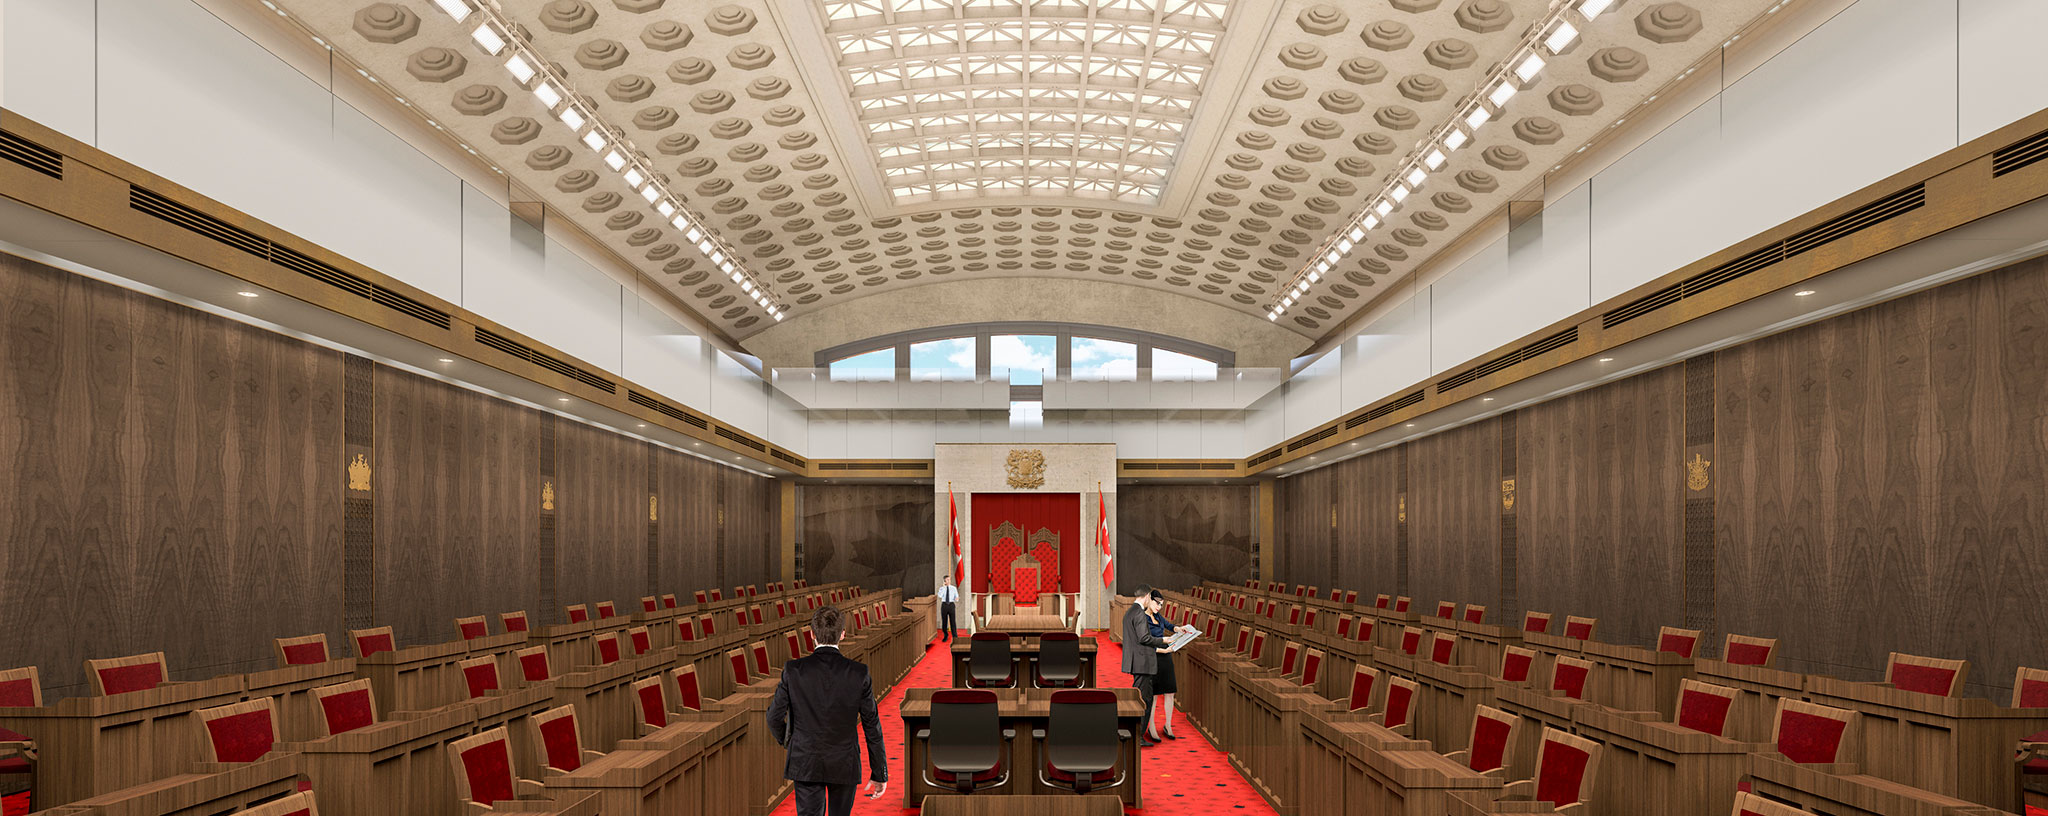 Canadian Senate chamber (temporary in Ottawa Union Station)